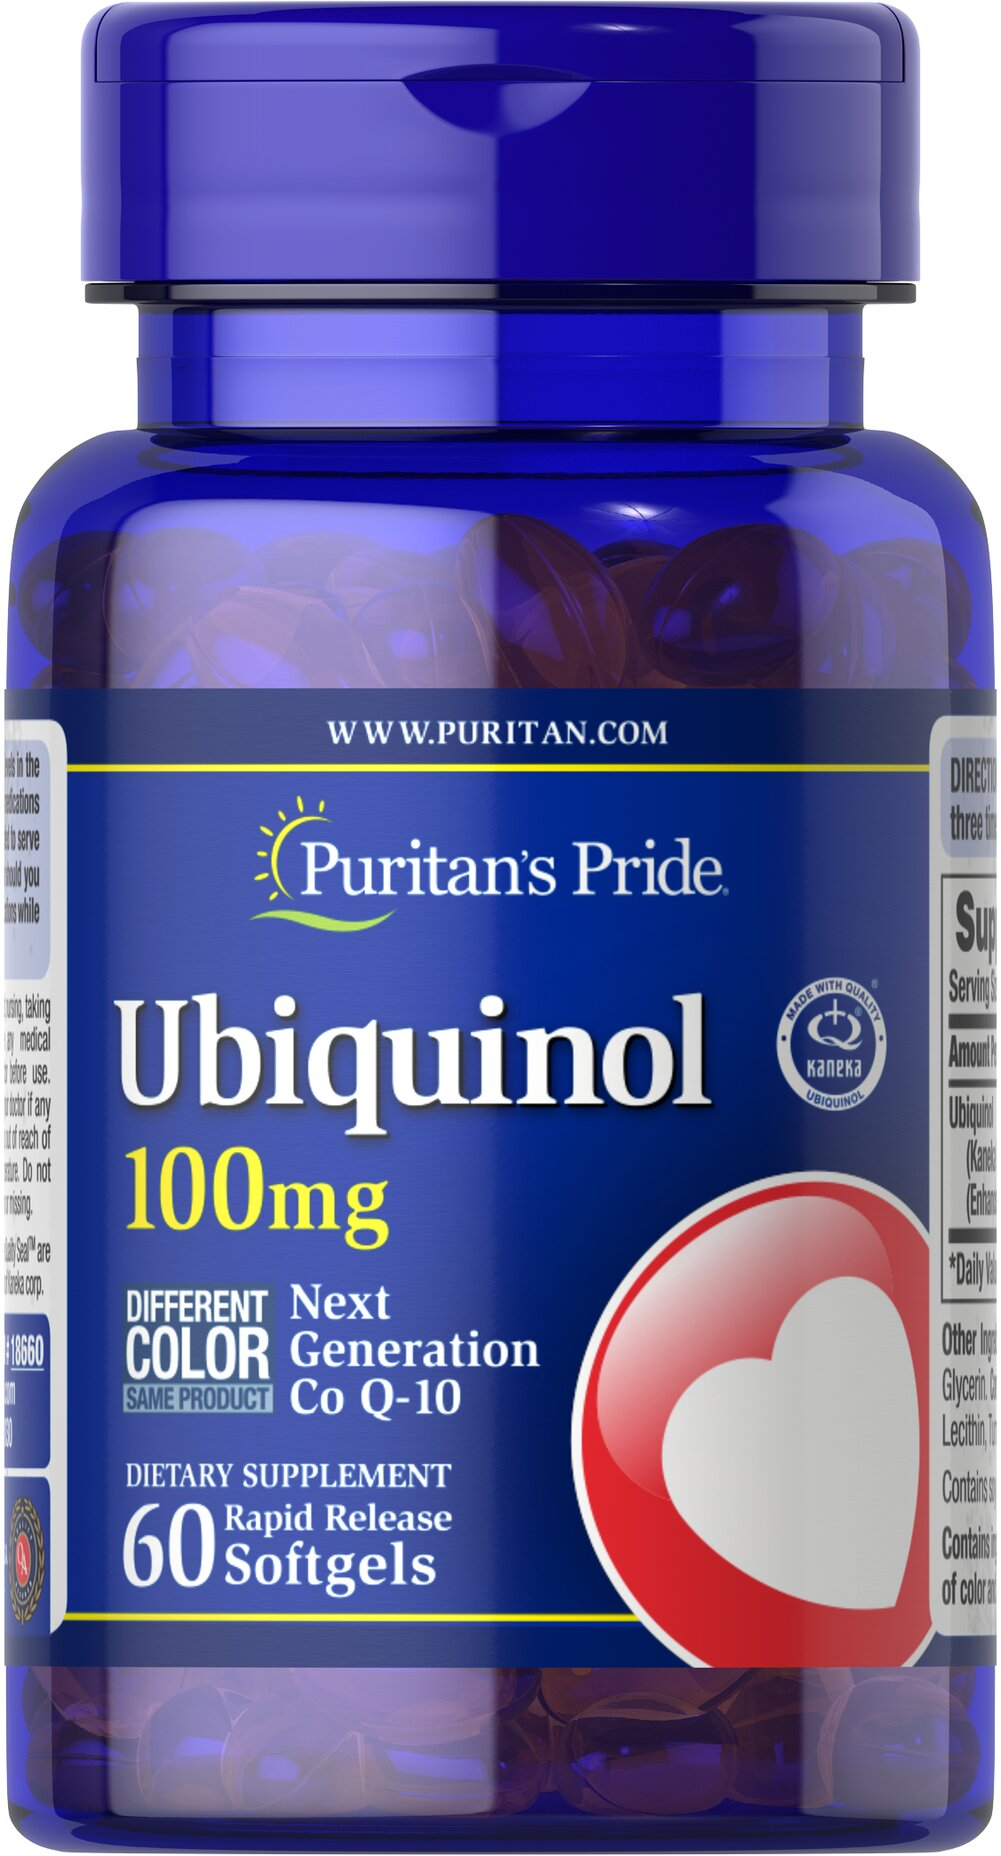 Ubiquinol 100 mg <p>Advanced, active form of Co Q-10</p><p>Promotes a healthy heart and cardiovascular system.**</p><p>Exceptional antioxidant properties.**</p><p>Ordinary Co Q-10 supplements must be converted in the body to Ubiquinol to provide benefits…so by supplementing with Ubiquinol, you're saving your body a step and reaping healthful benefits right away!**</p><p>Studies indicate that Co Q-10 levels may decline as we age.</p> 60